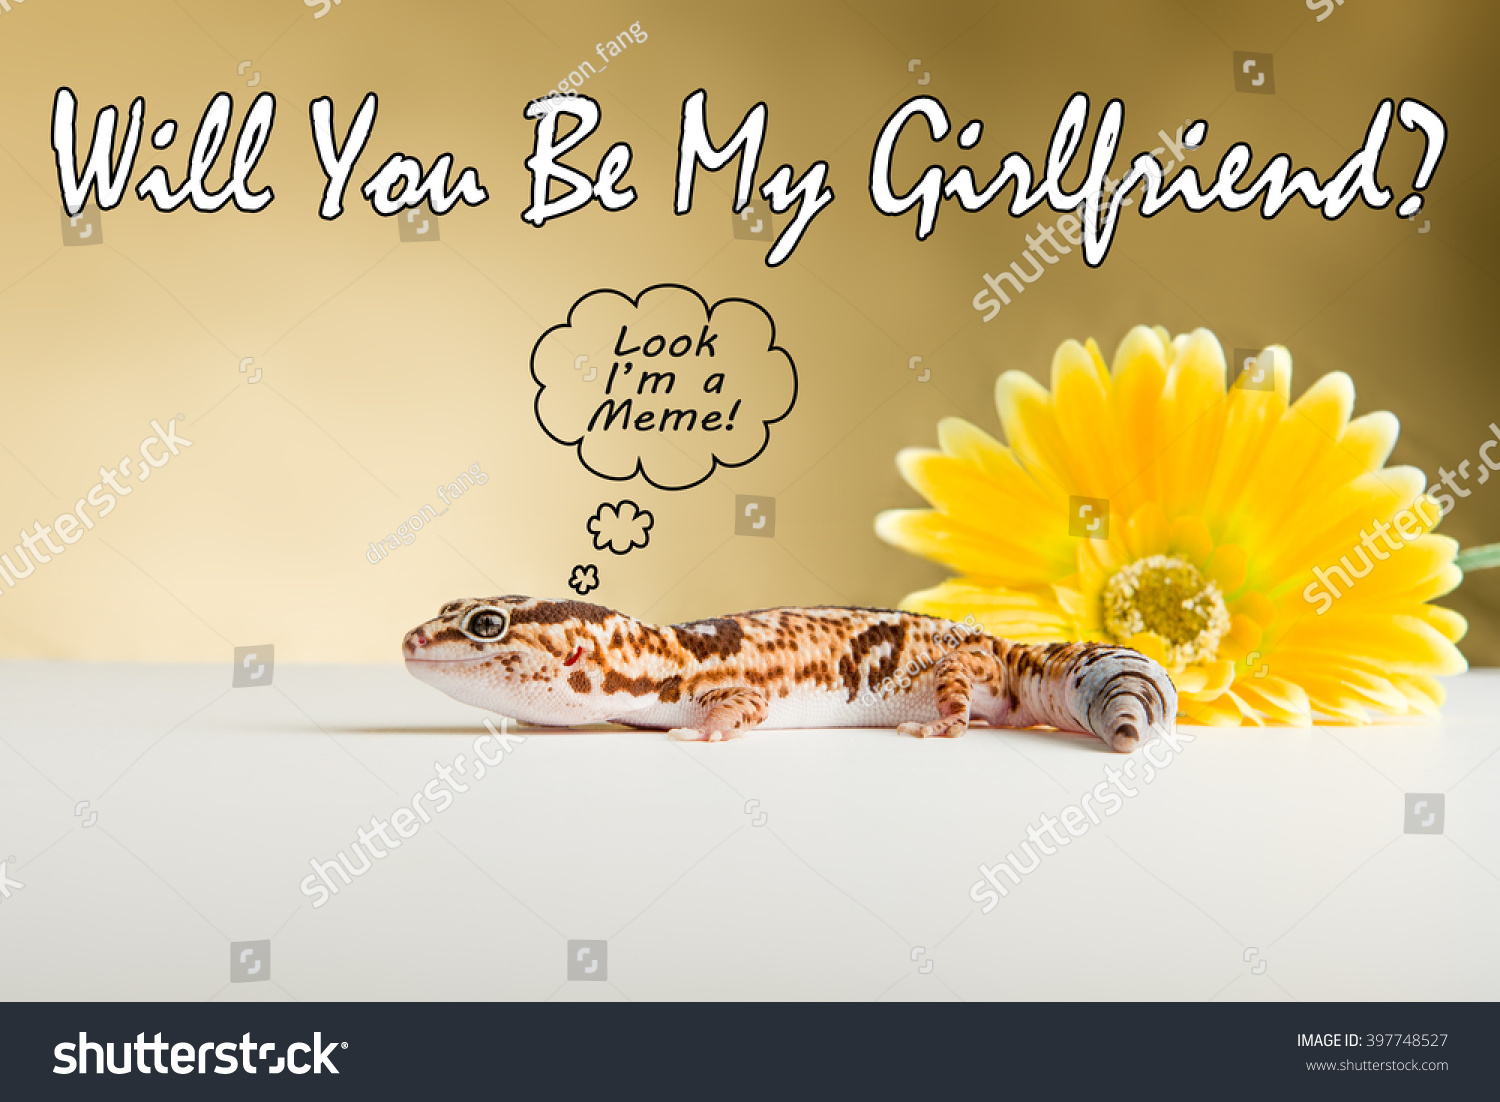 stock photo meme style image featuring a leopard gecko 397748527 meme style image featuring leopard gecko stock photo (100% legal